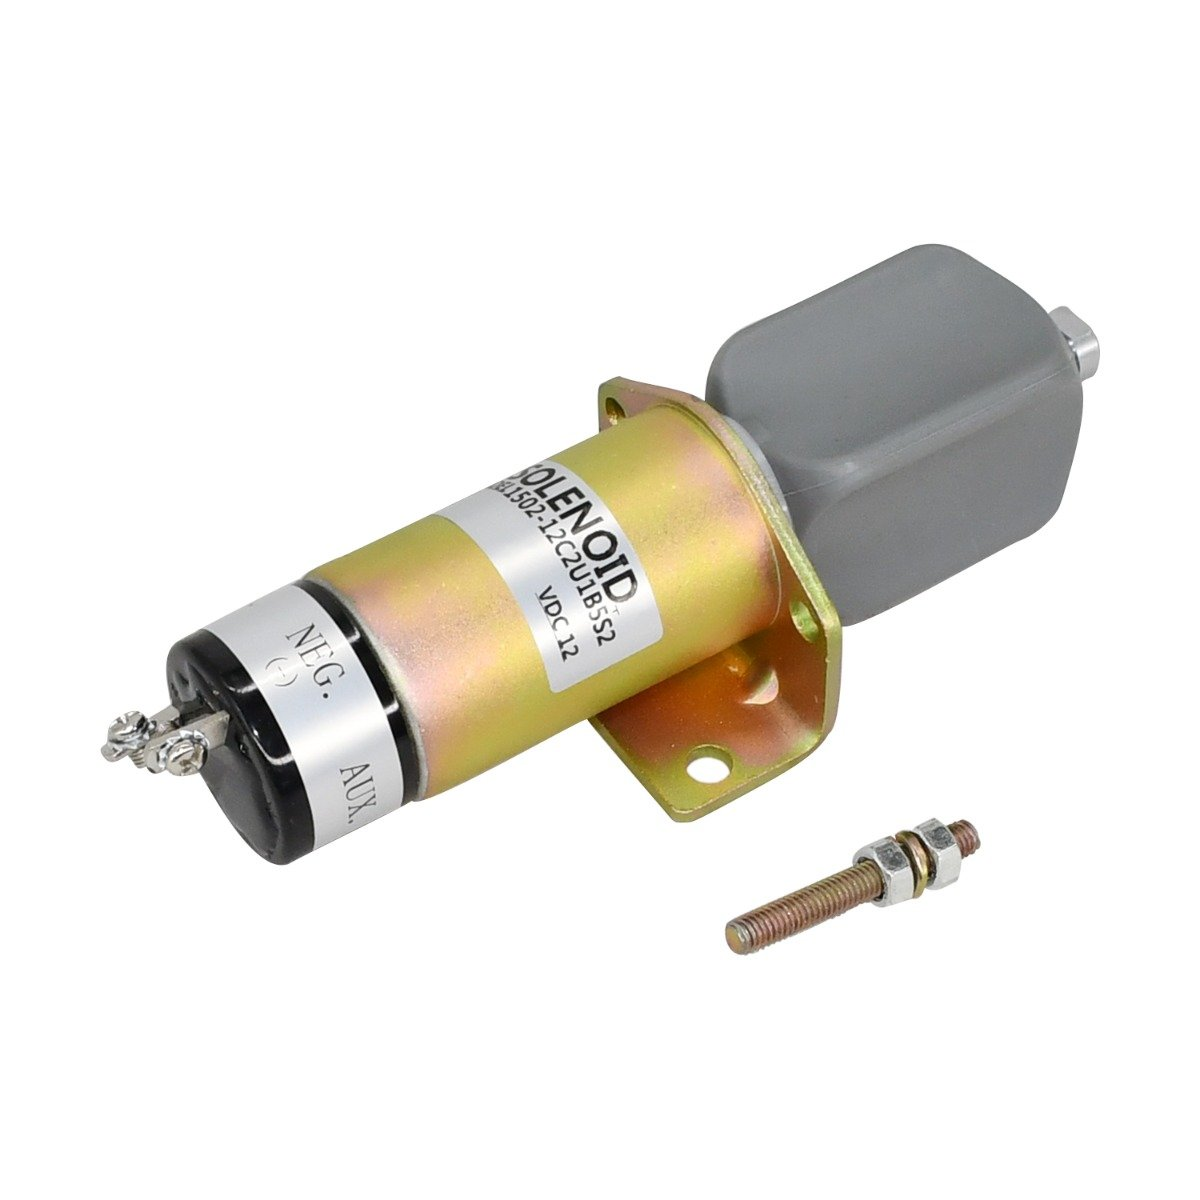 12V Shut Down Solenoid 1502-12C2U1B5S2 Compatible With Woodward